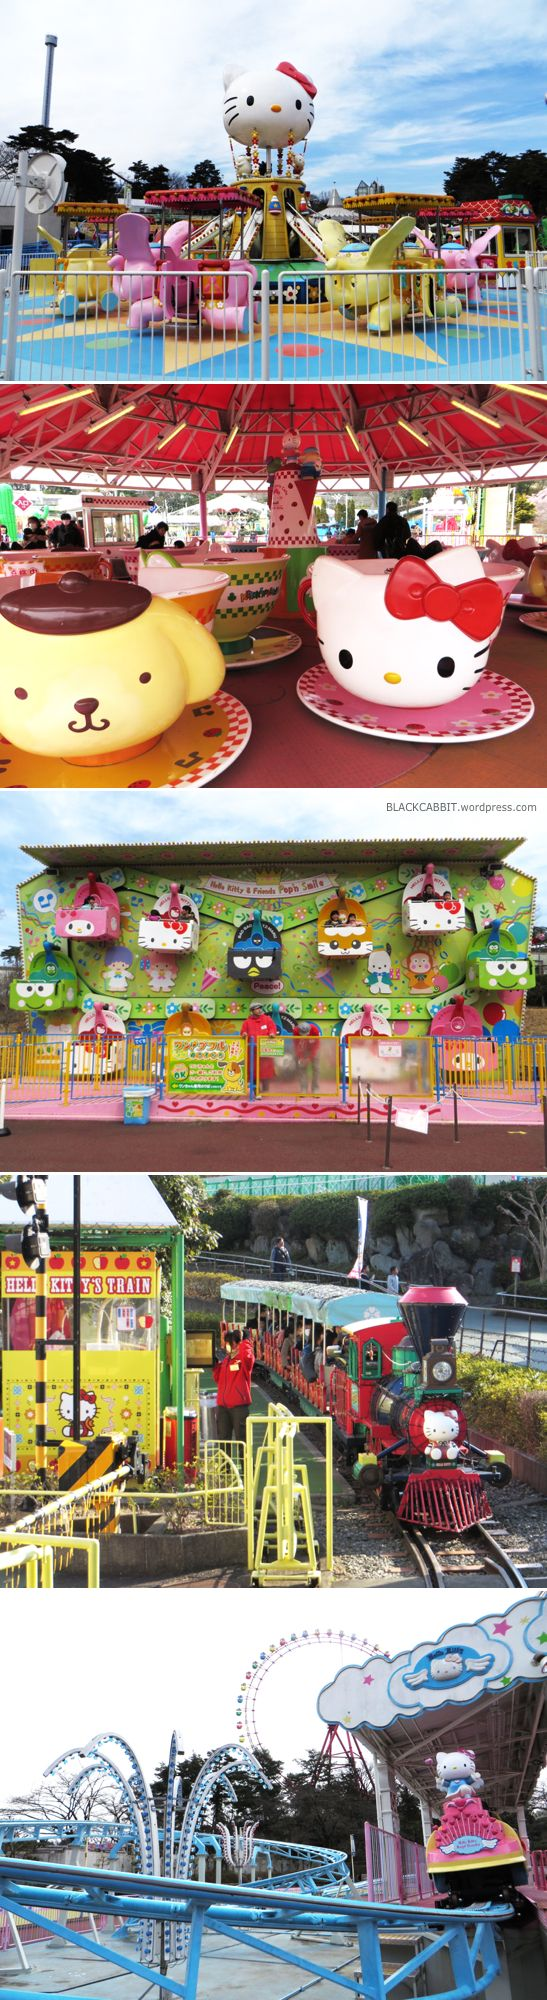 Hello Kitty Land, aka. Meruhen Town at Seibuen Amusement Park, Tokorozawa, Saitama prefecture.